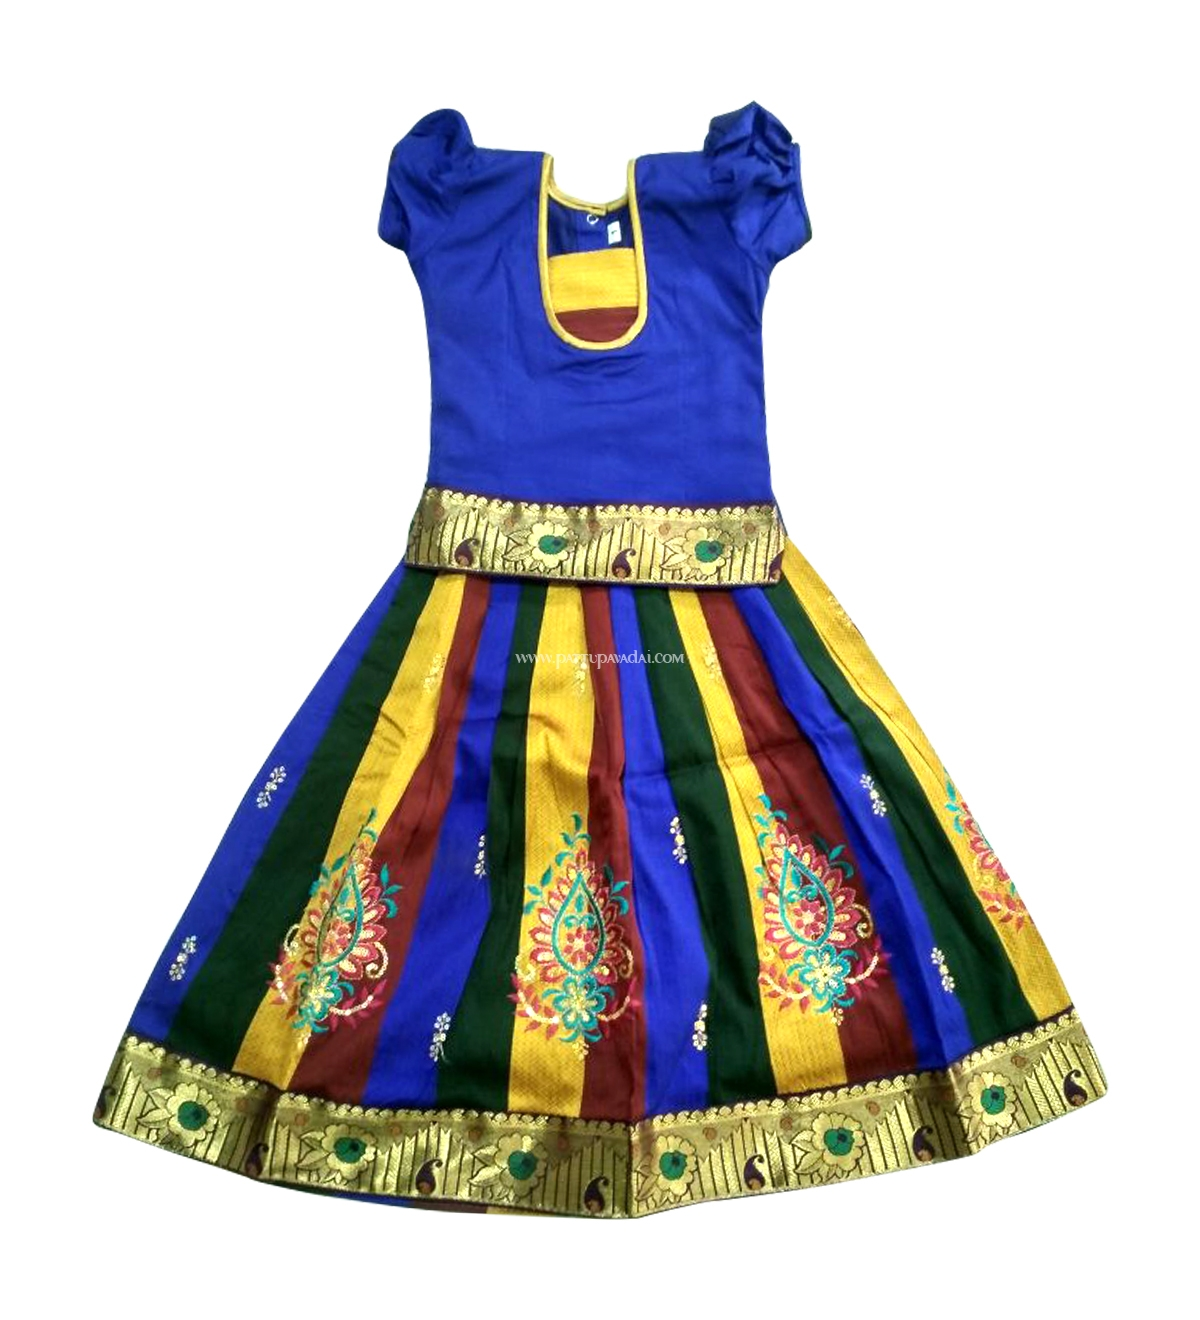 52661168a7bcc Raw silk pavadai blue top and multi coloured skirt for year baby girls  image jpg 1200x1320